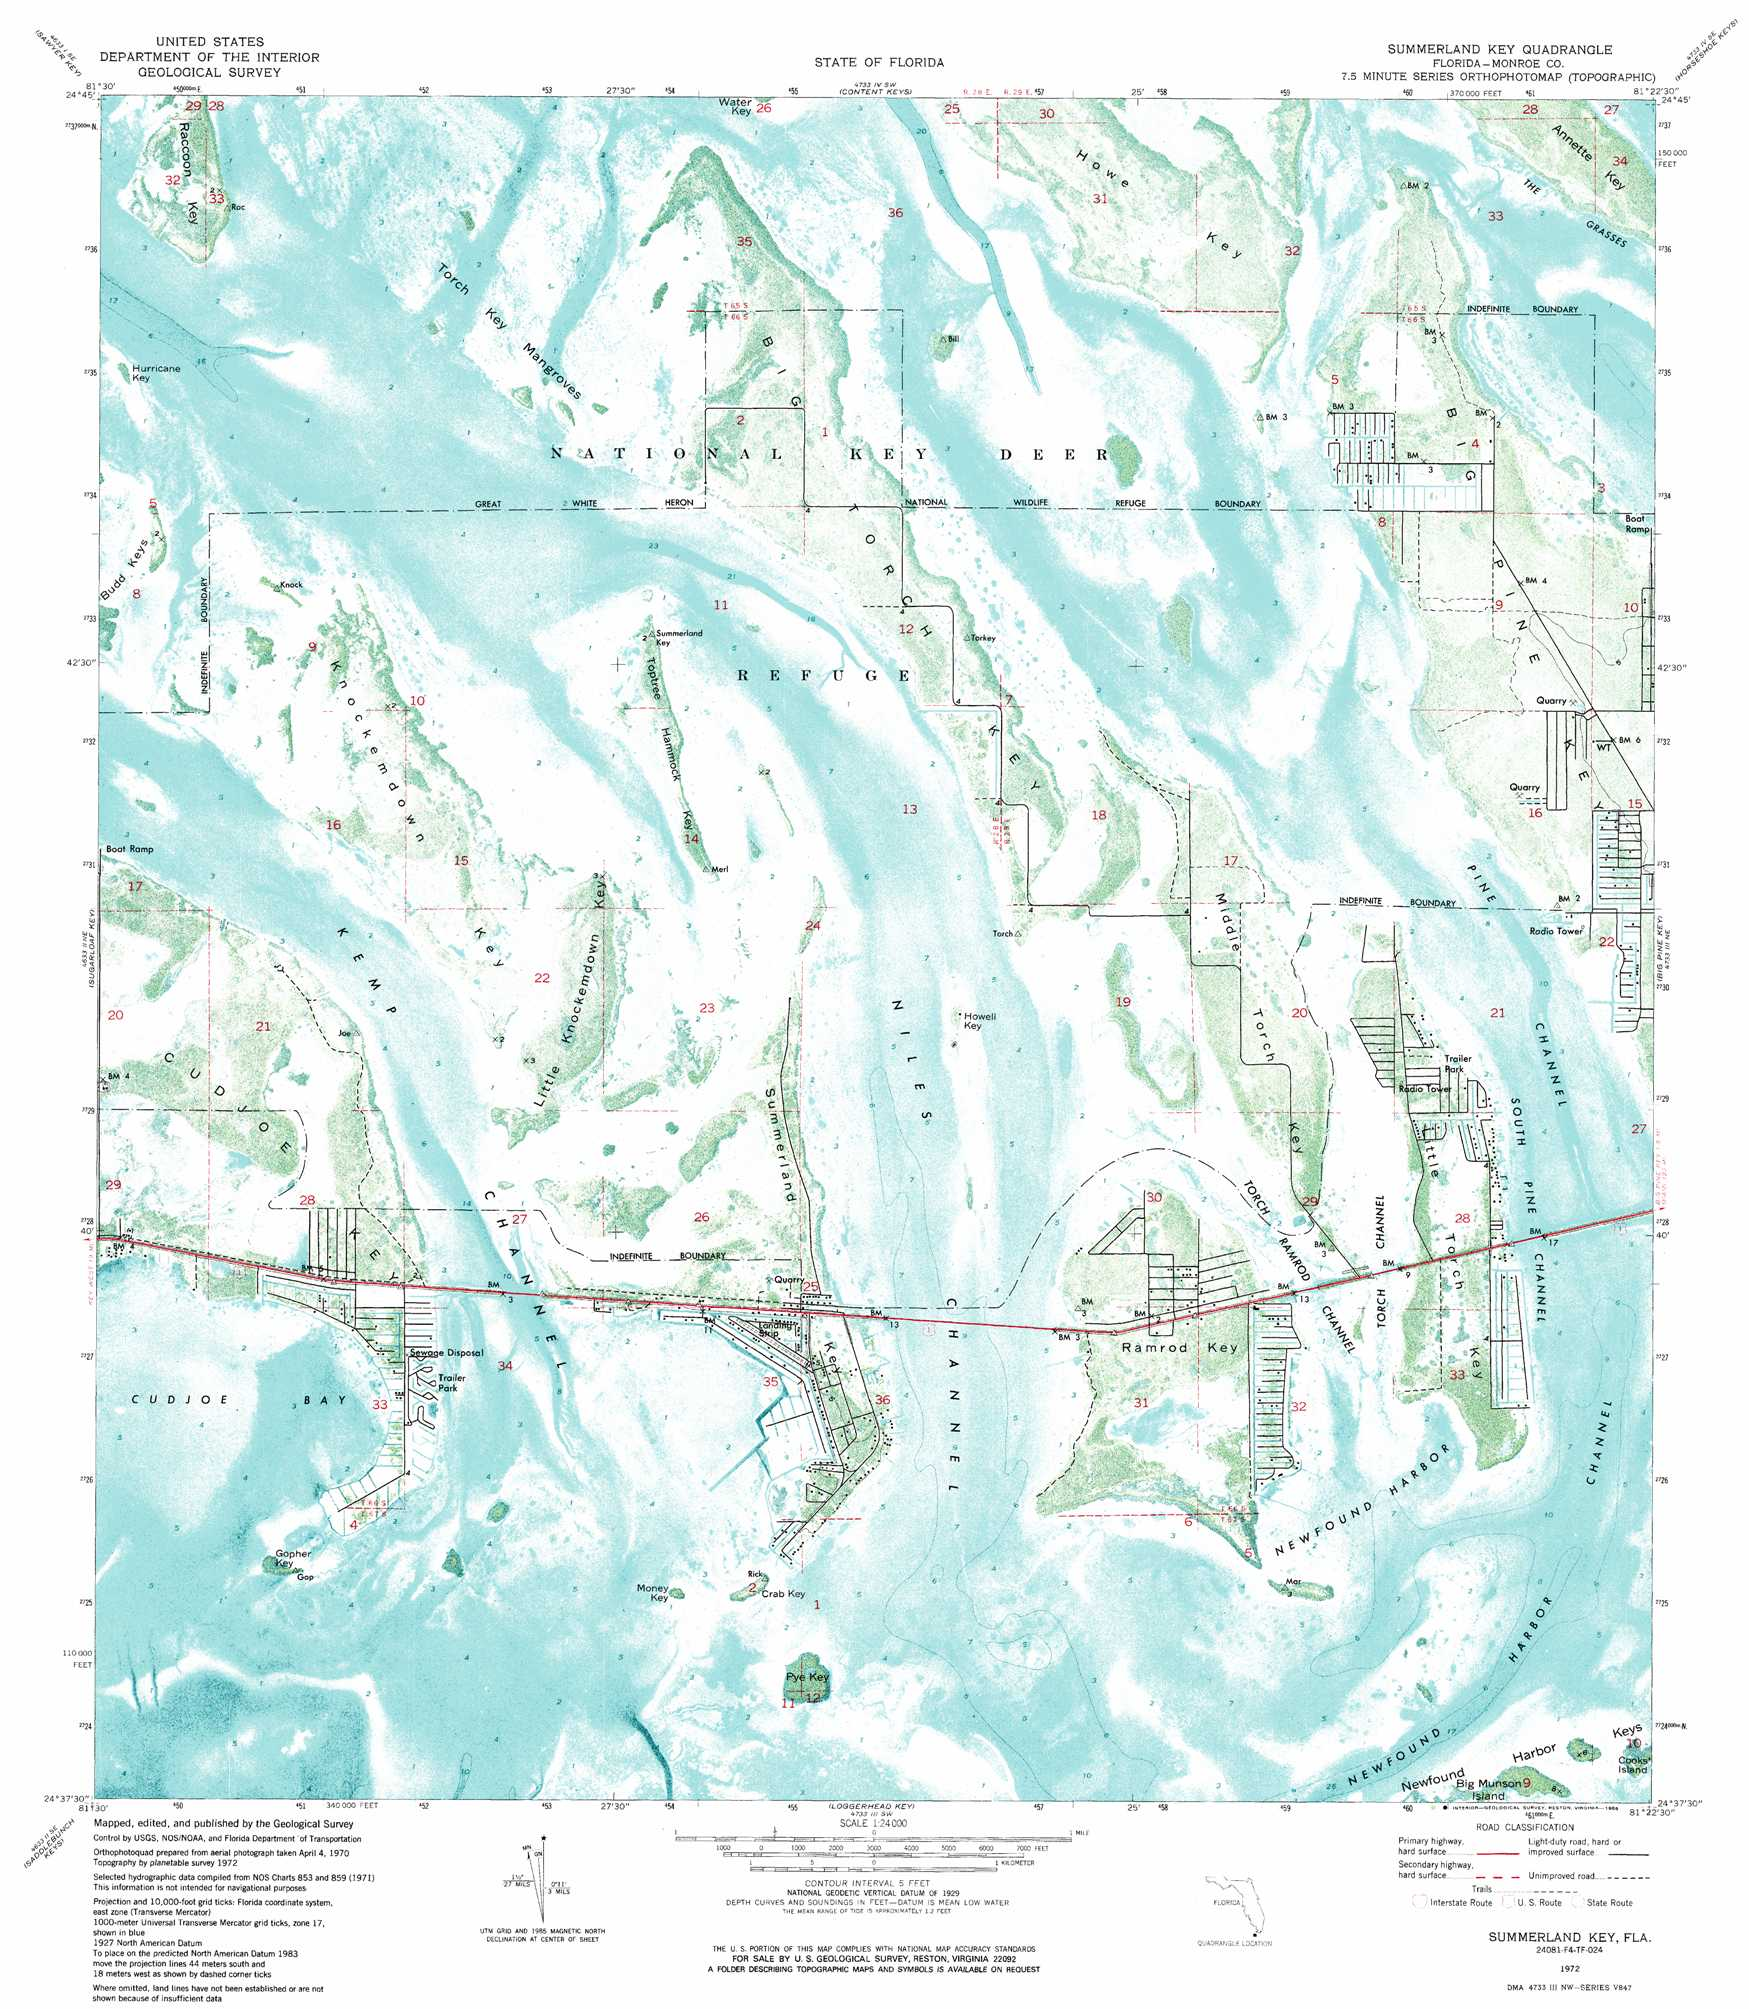 Summerland Key topographic map, FL - USGS Topo Quad 24081f4